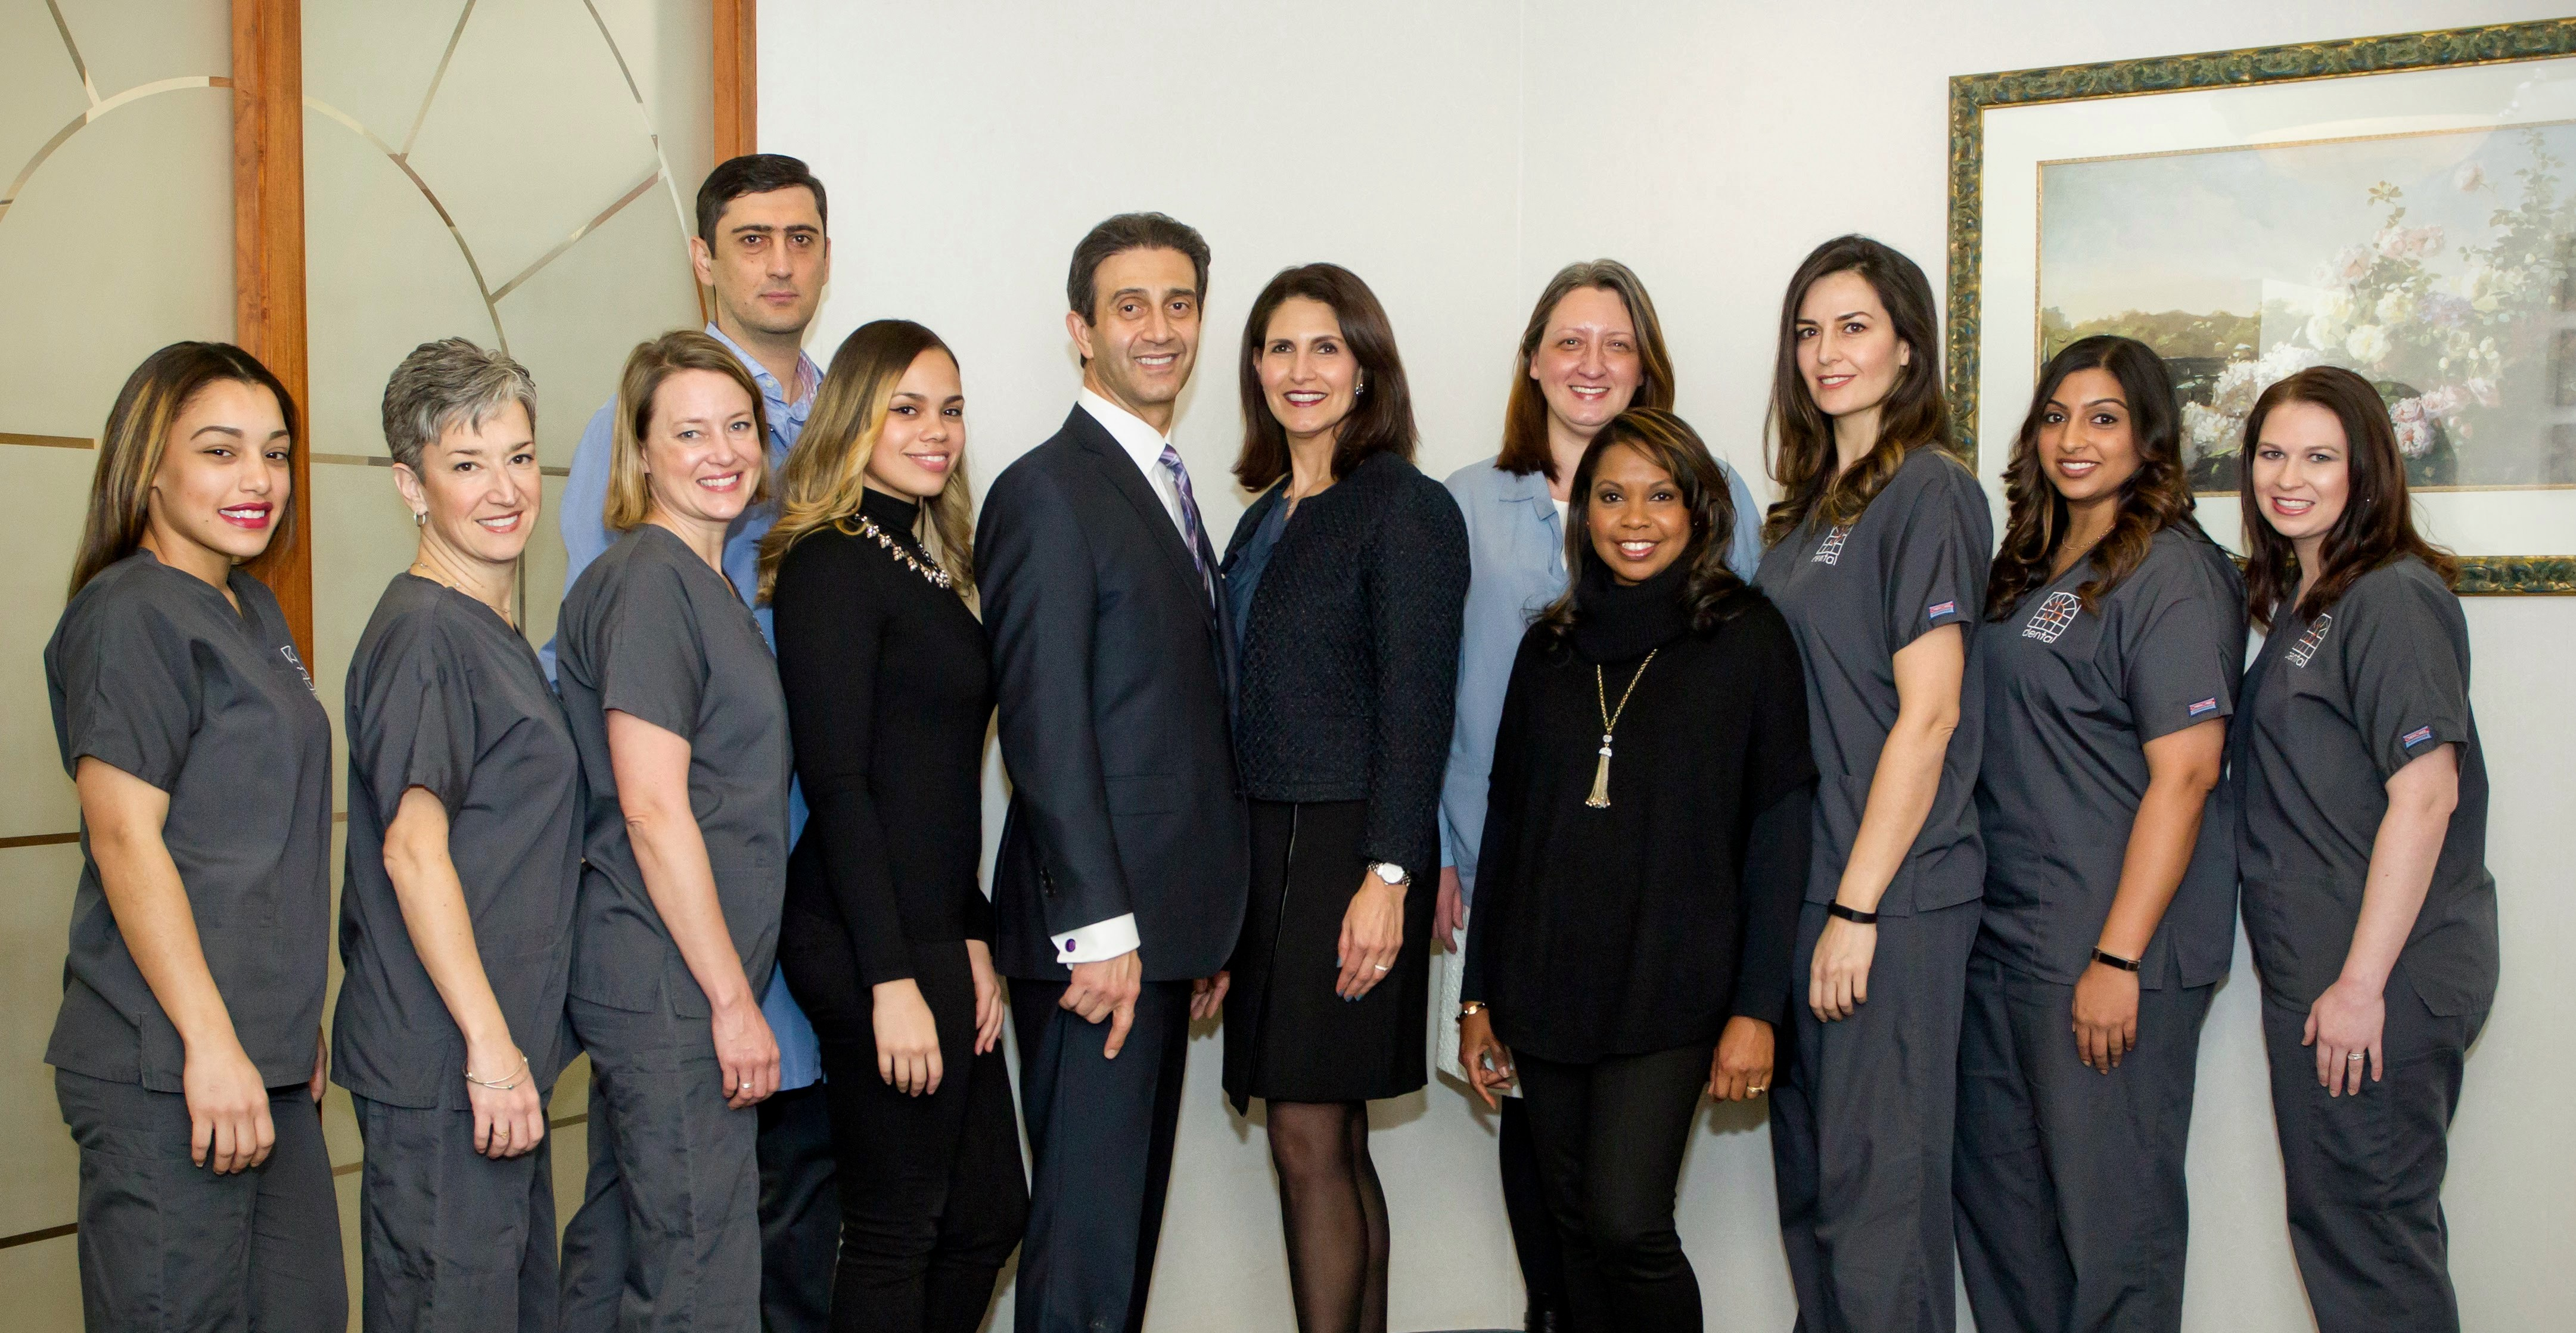 Graziano D. Giglio, DDS, PC reviews | Dental Hygienists at 16 E 52nd St - New York NY